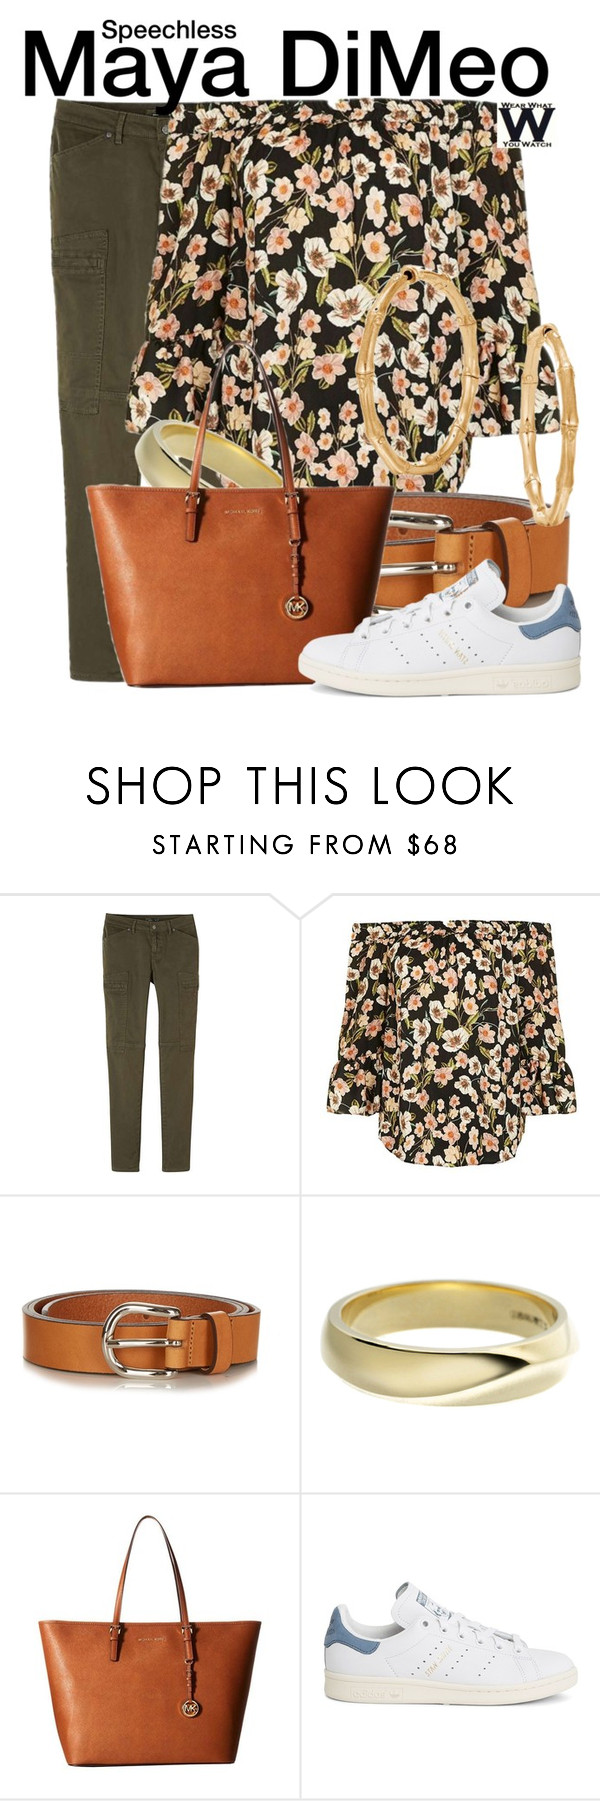 """""""Speechless"""" by wearwhatyouwatch ❤ liked on Polyvore featuring prAna, Topshop, Étoile Isabel Marant, Shaun Leane, MICHAEL Michael Kors, adidas, John Hardy, television and wearwhatyouwatch"""